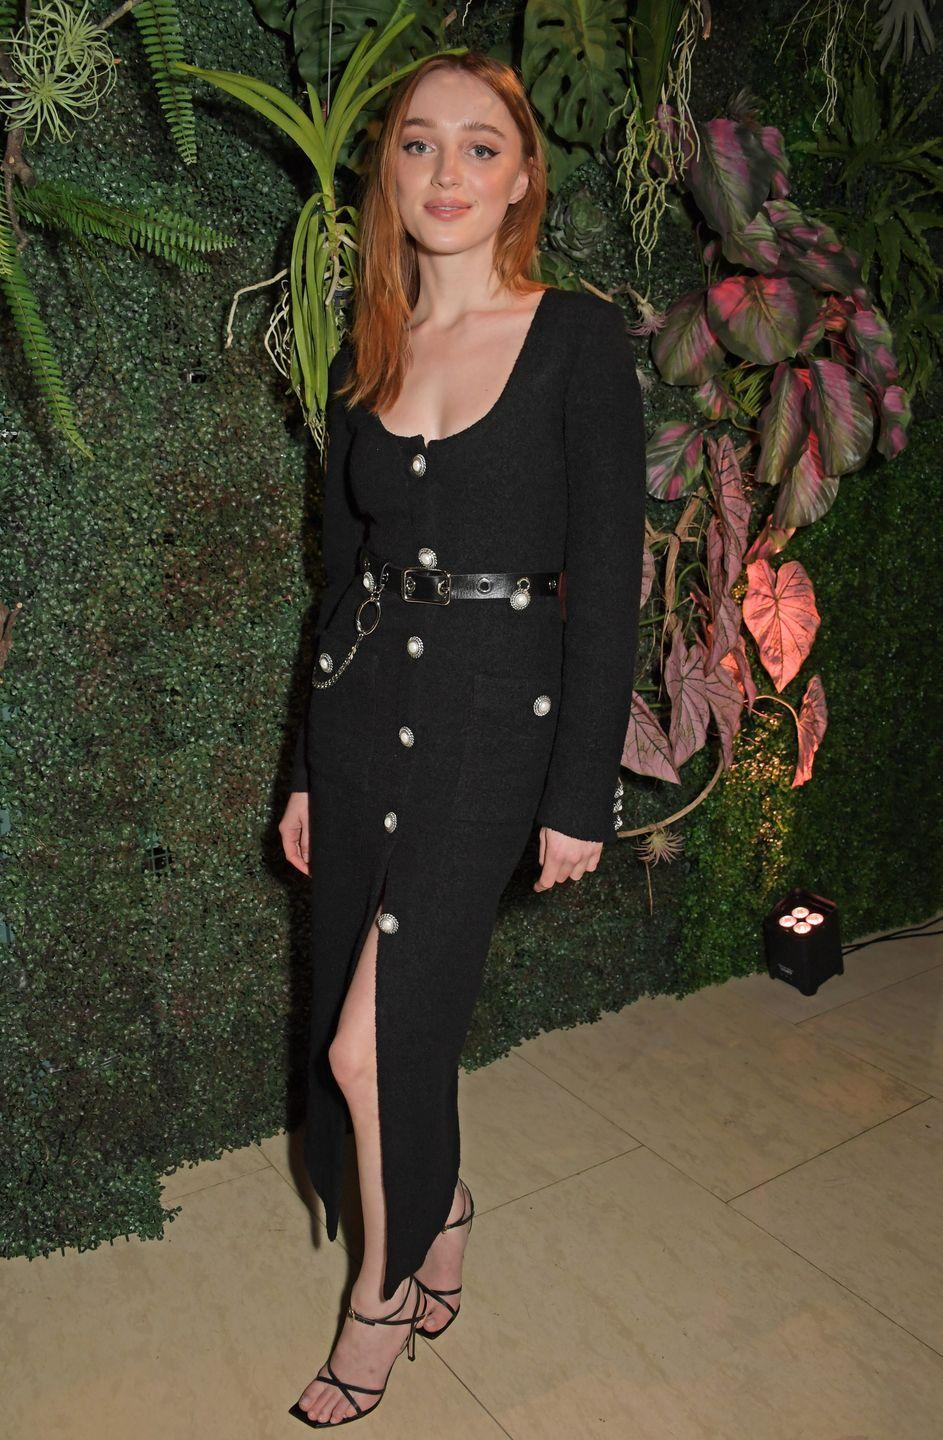 <p>The Bridgerton star wore a black midi dress embellished with pearl buttons, a black leather belt and black strappy heels to a fundraiser in London. The actor kept her make-up simple and her red hair styled straight. </p>